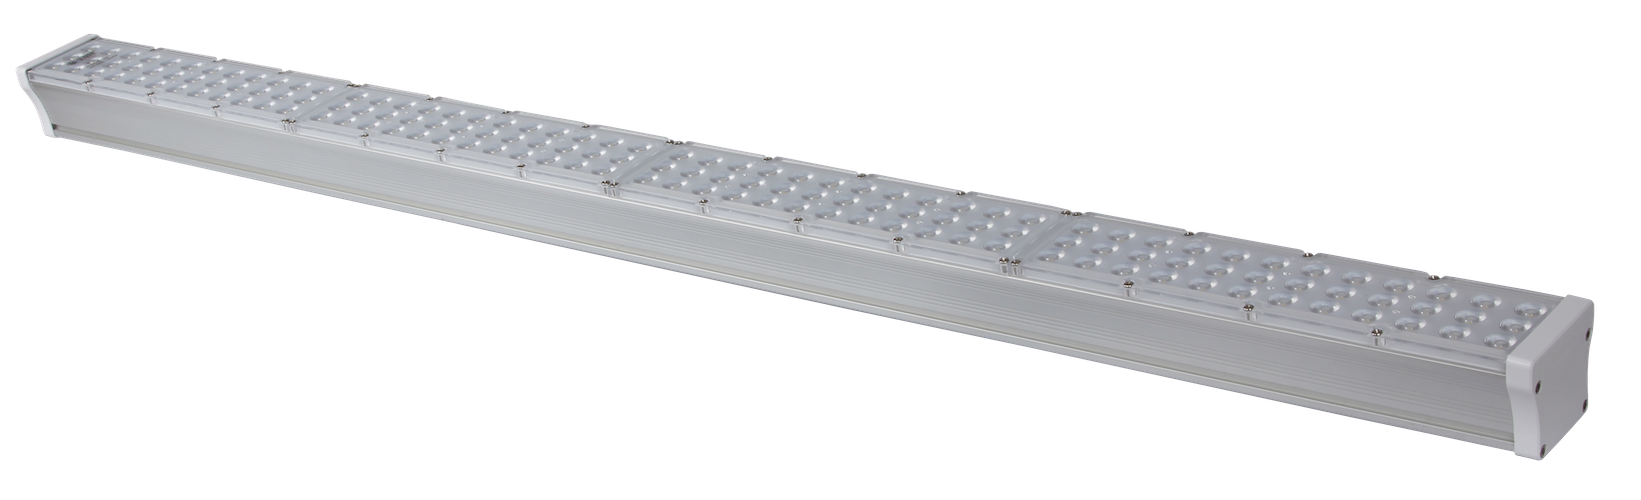 40w LED Linear light